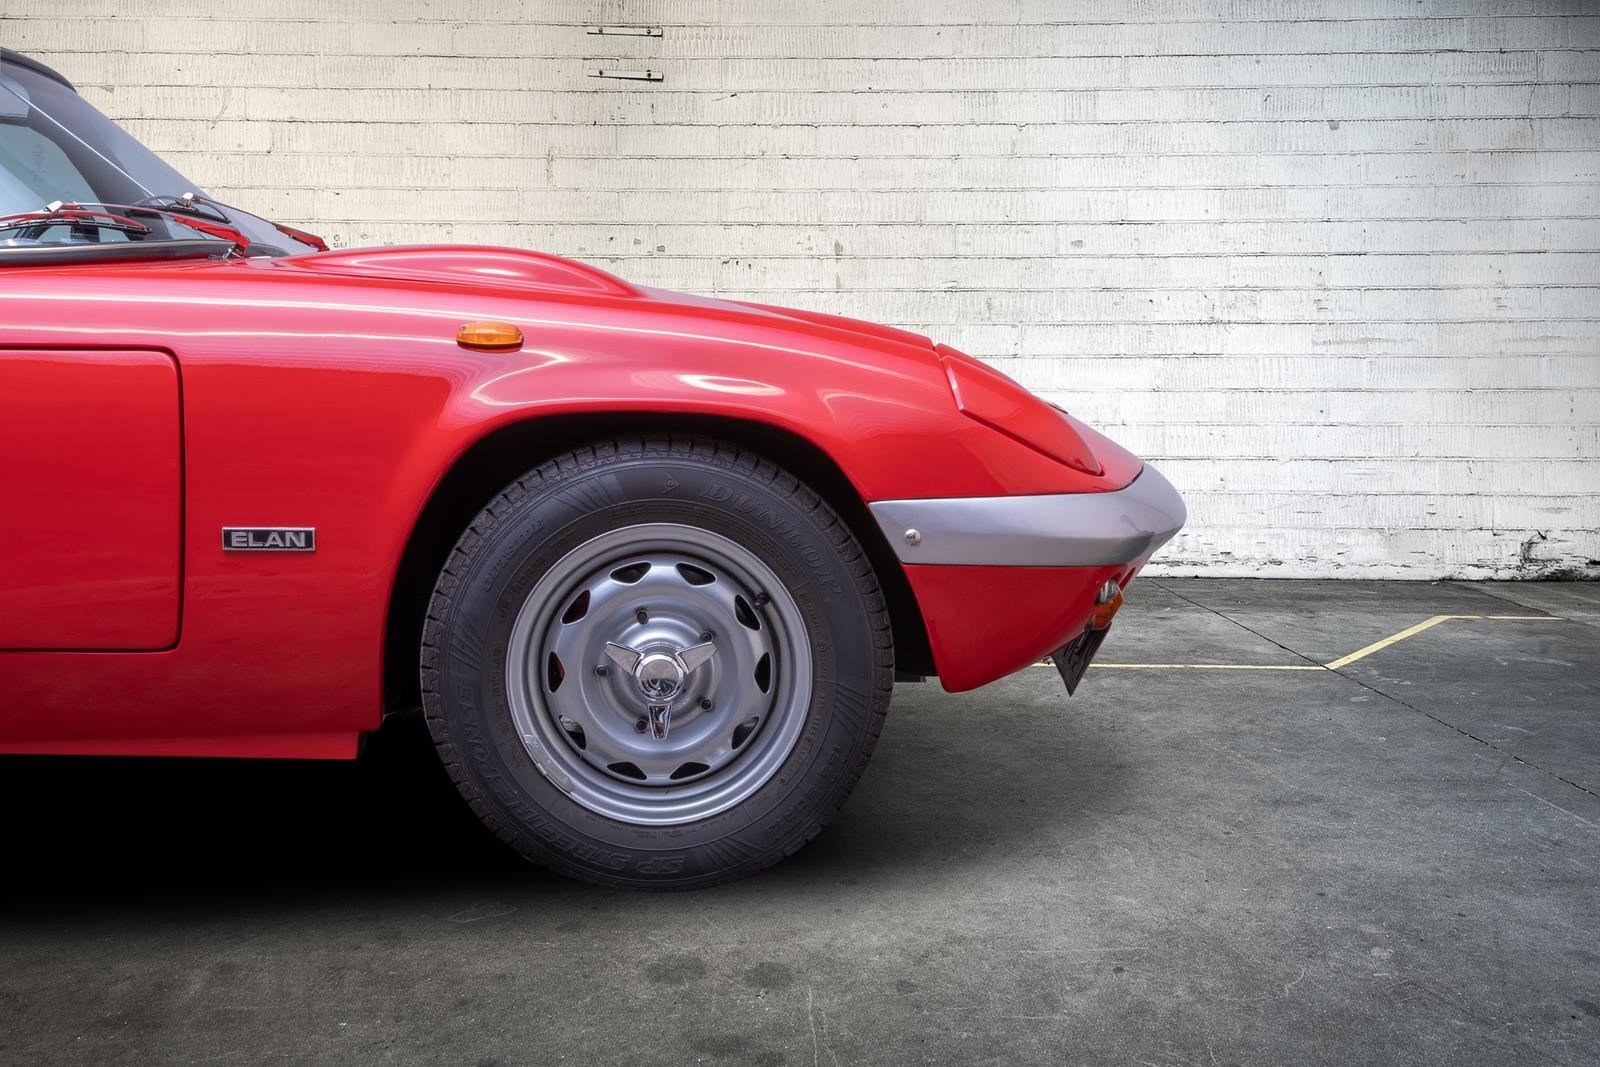 1968 Lotus Elan S4 SE Cabriolet For Sale (picture 2 of 6)